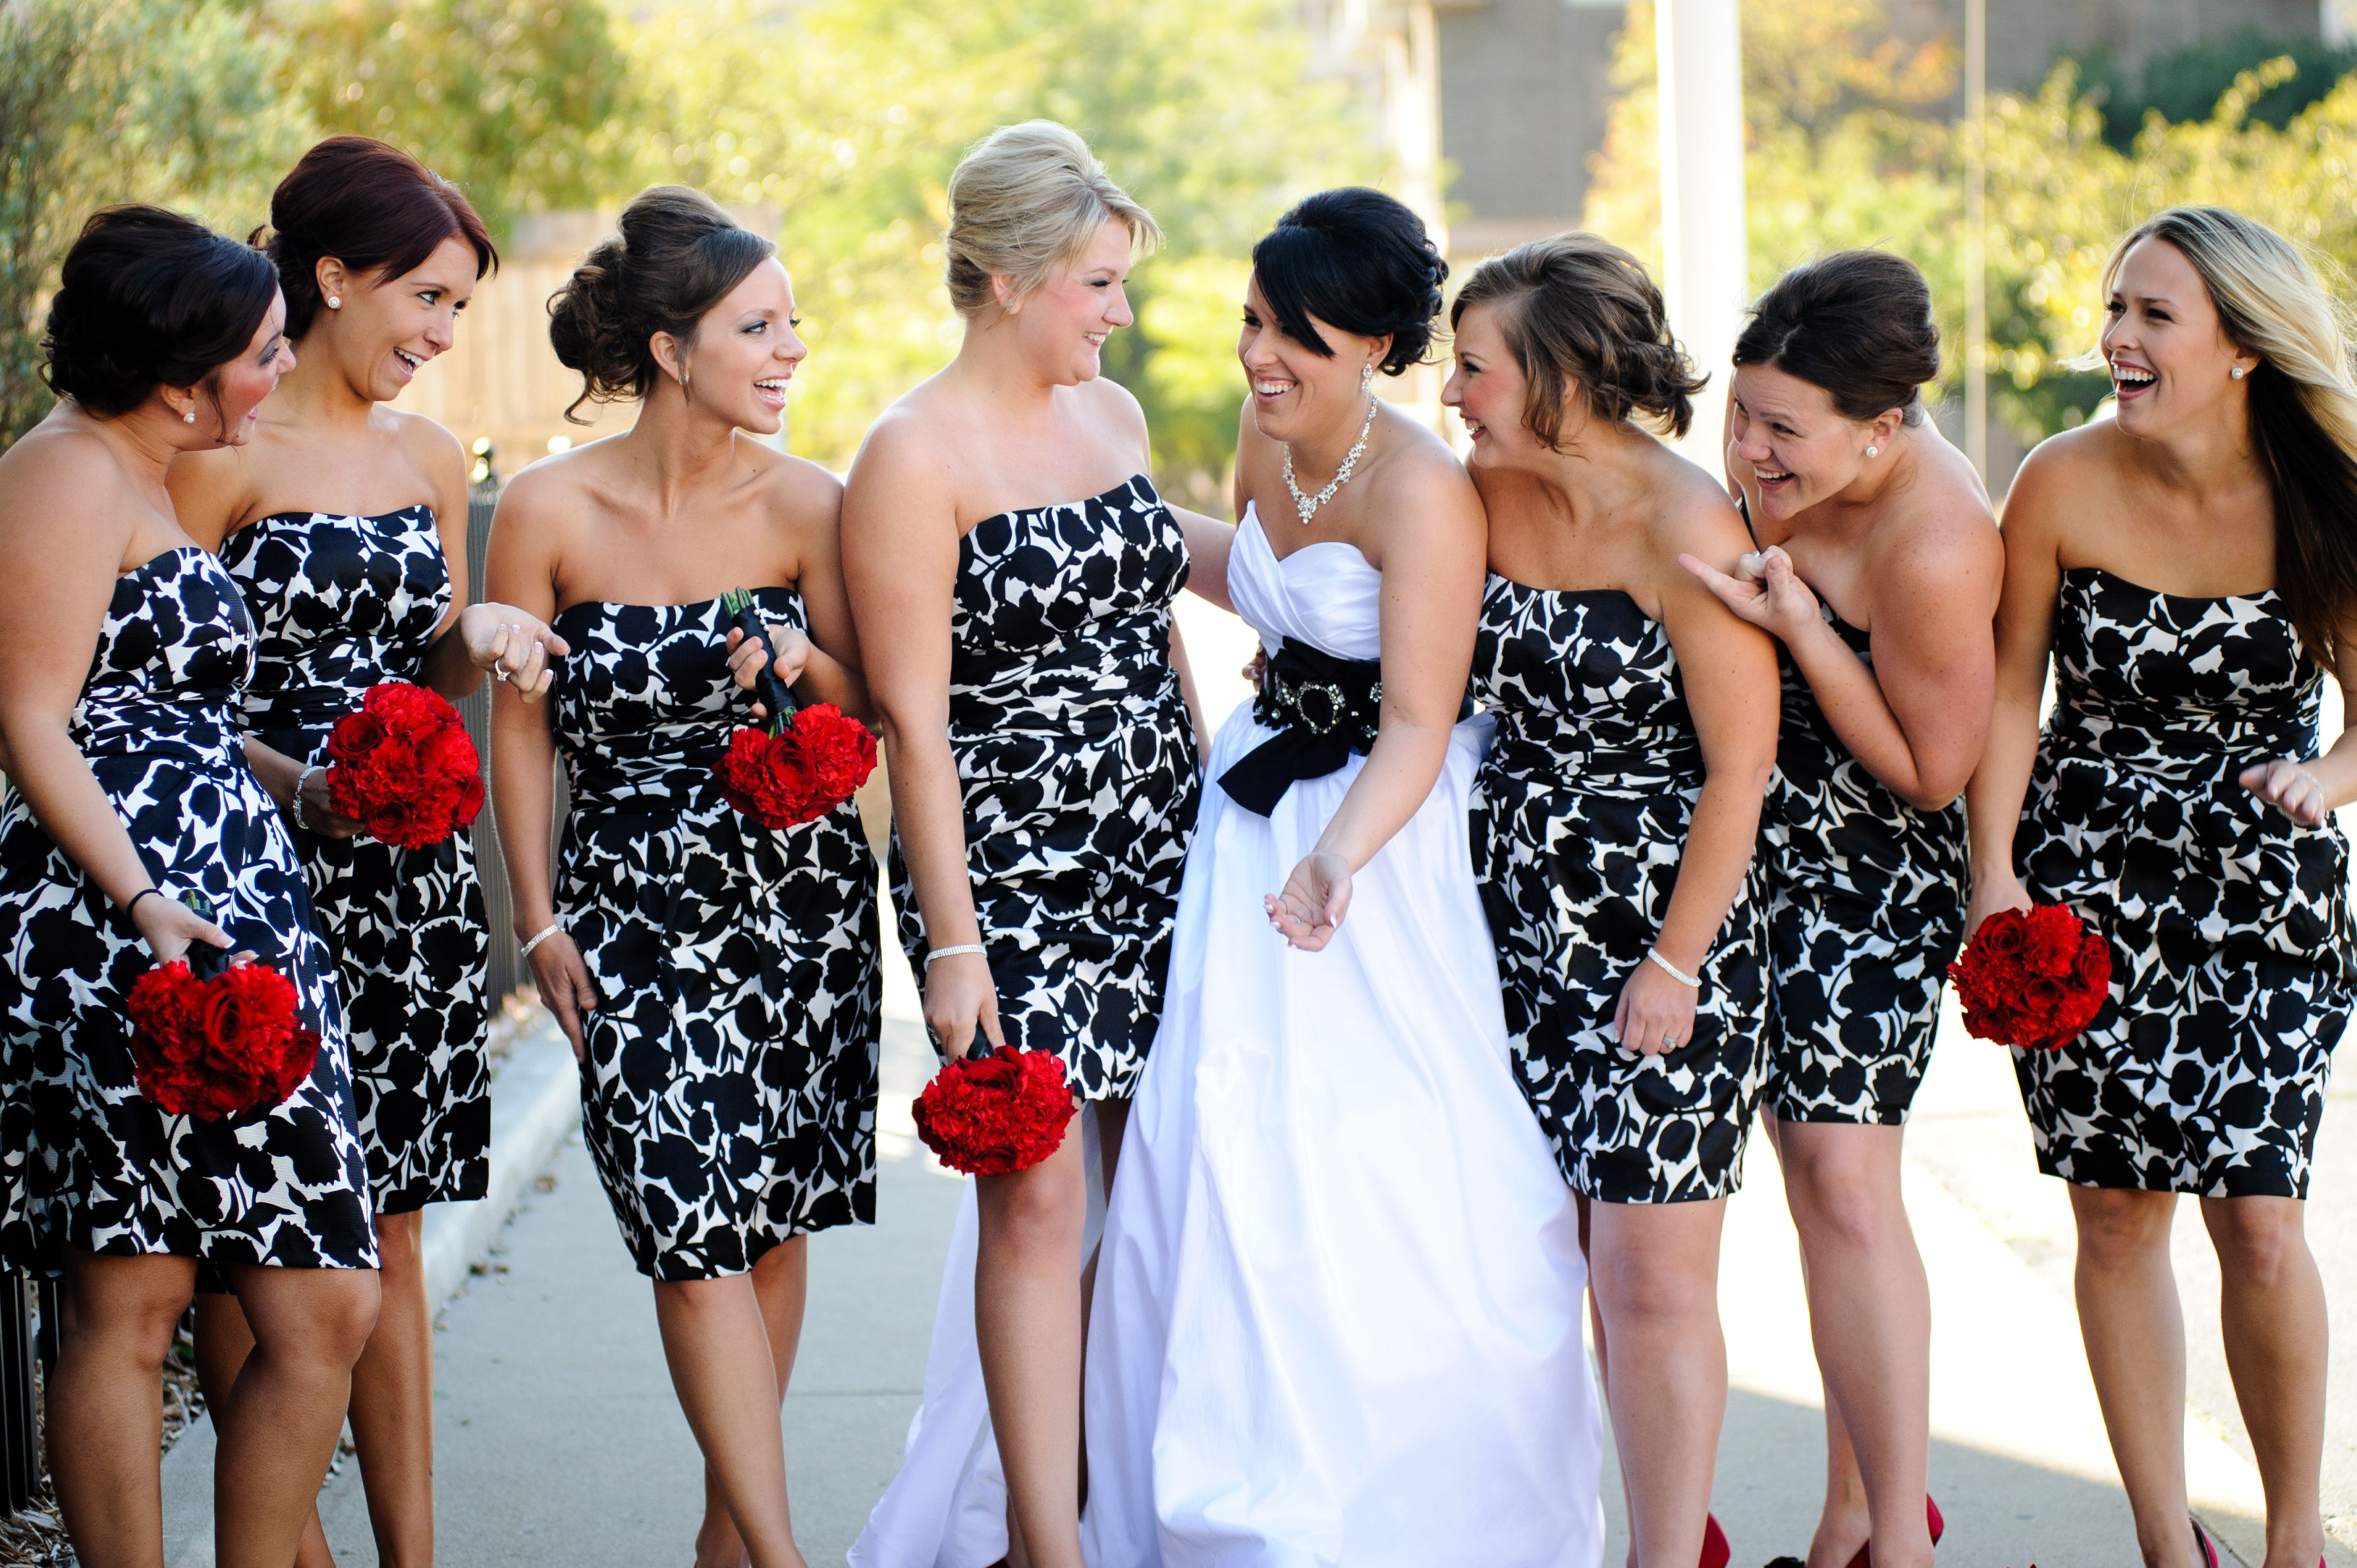 Red black and white wedding bridesmaid dresses image collections red black and white wedding bridesmaid dresses images braidsmaid red black and white wedding bridesmaid dresses ombrellifo Image collections